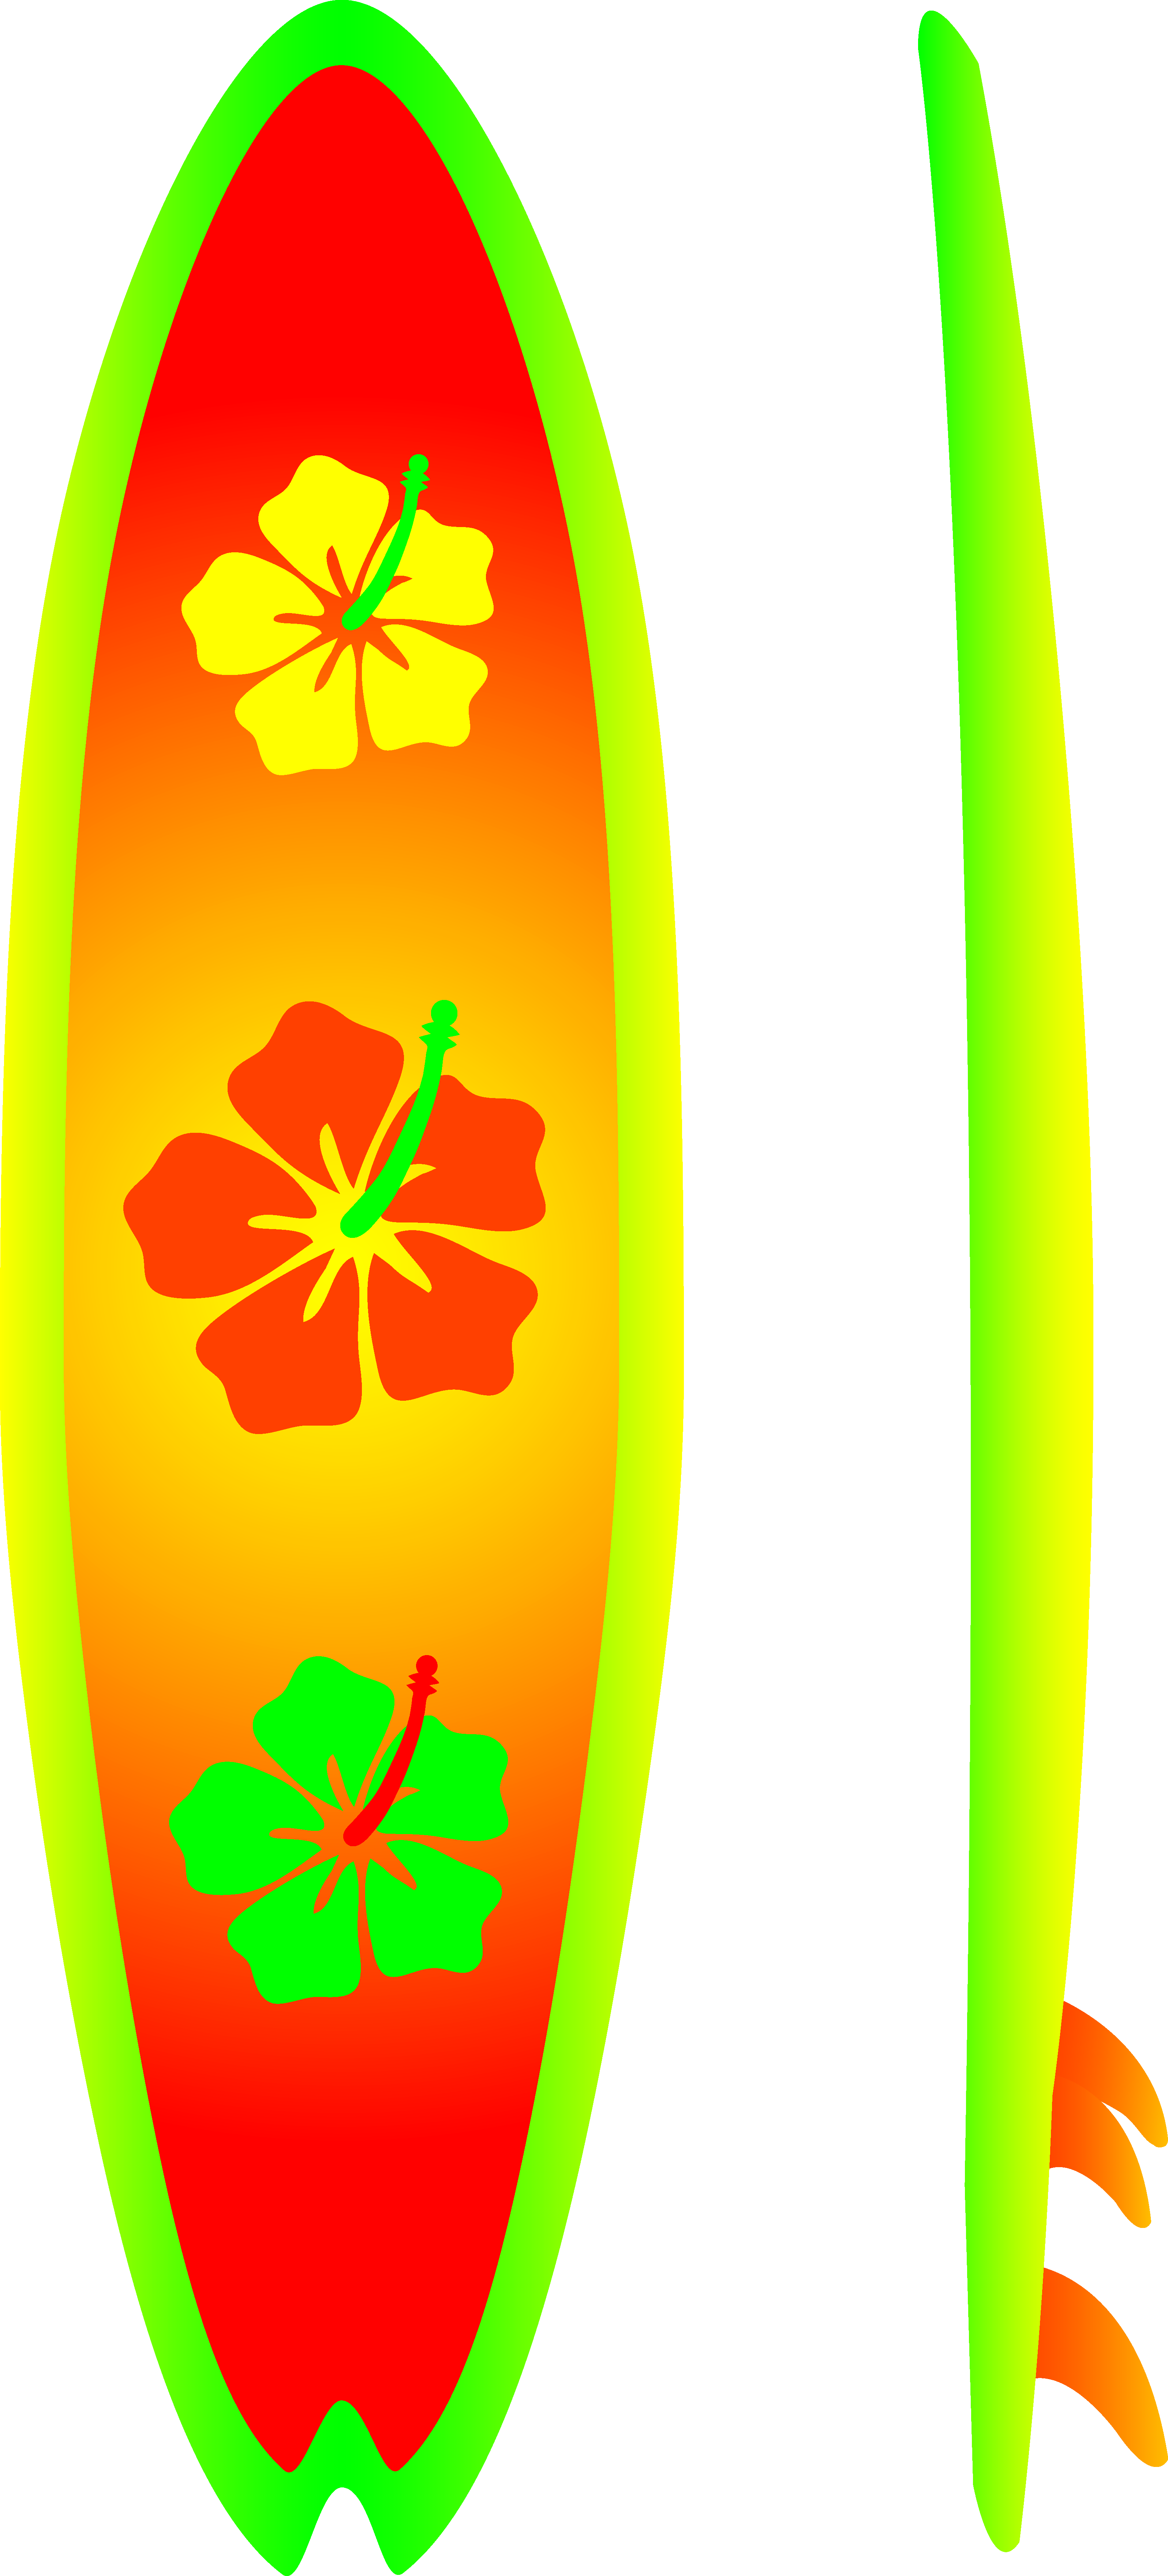 Clip Art Surf Board Clip Art surfboard clip art free clipart panda images clipart